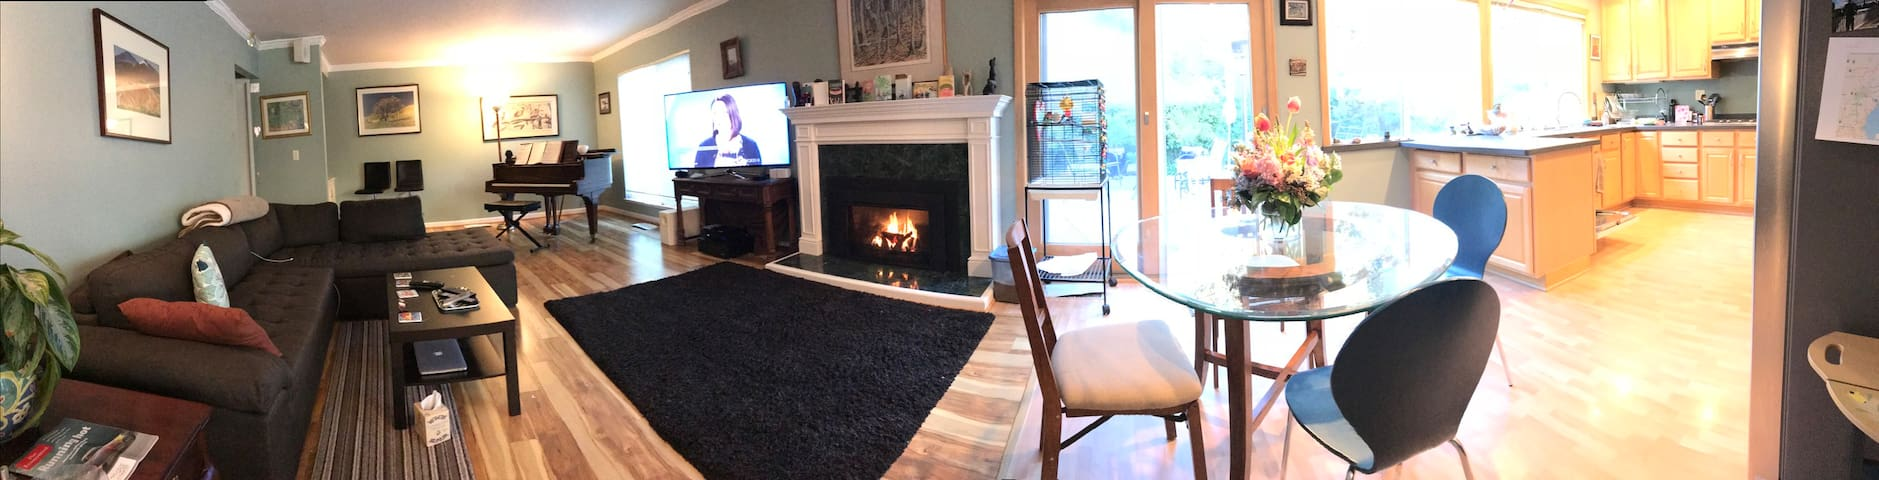 3 BR retreat 3+ miles from theater, shopping, BART